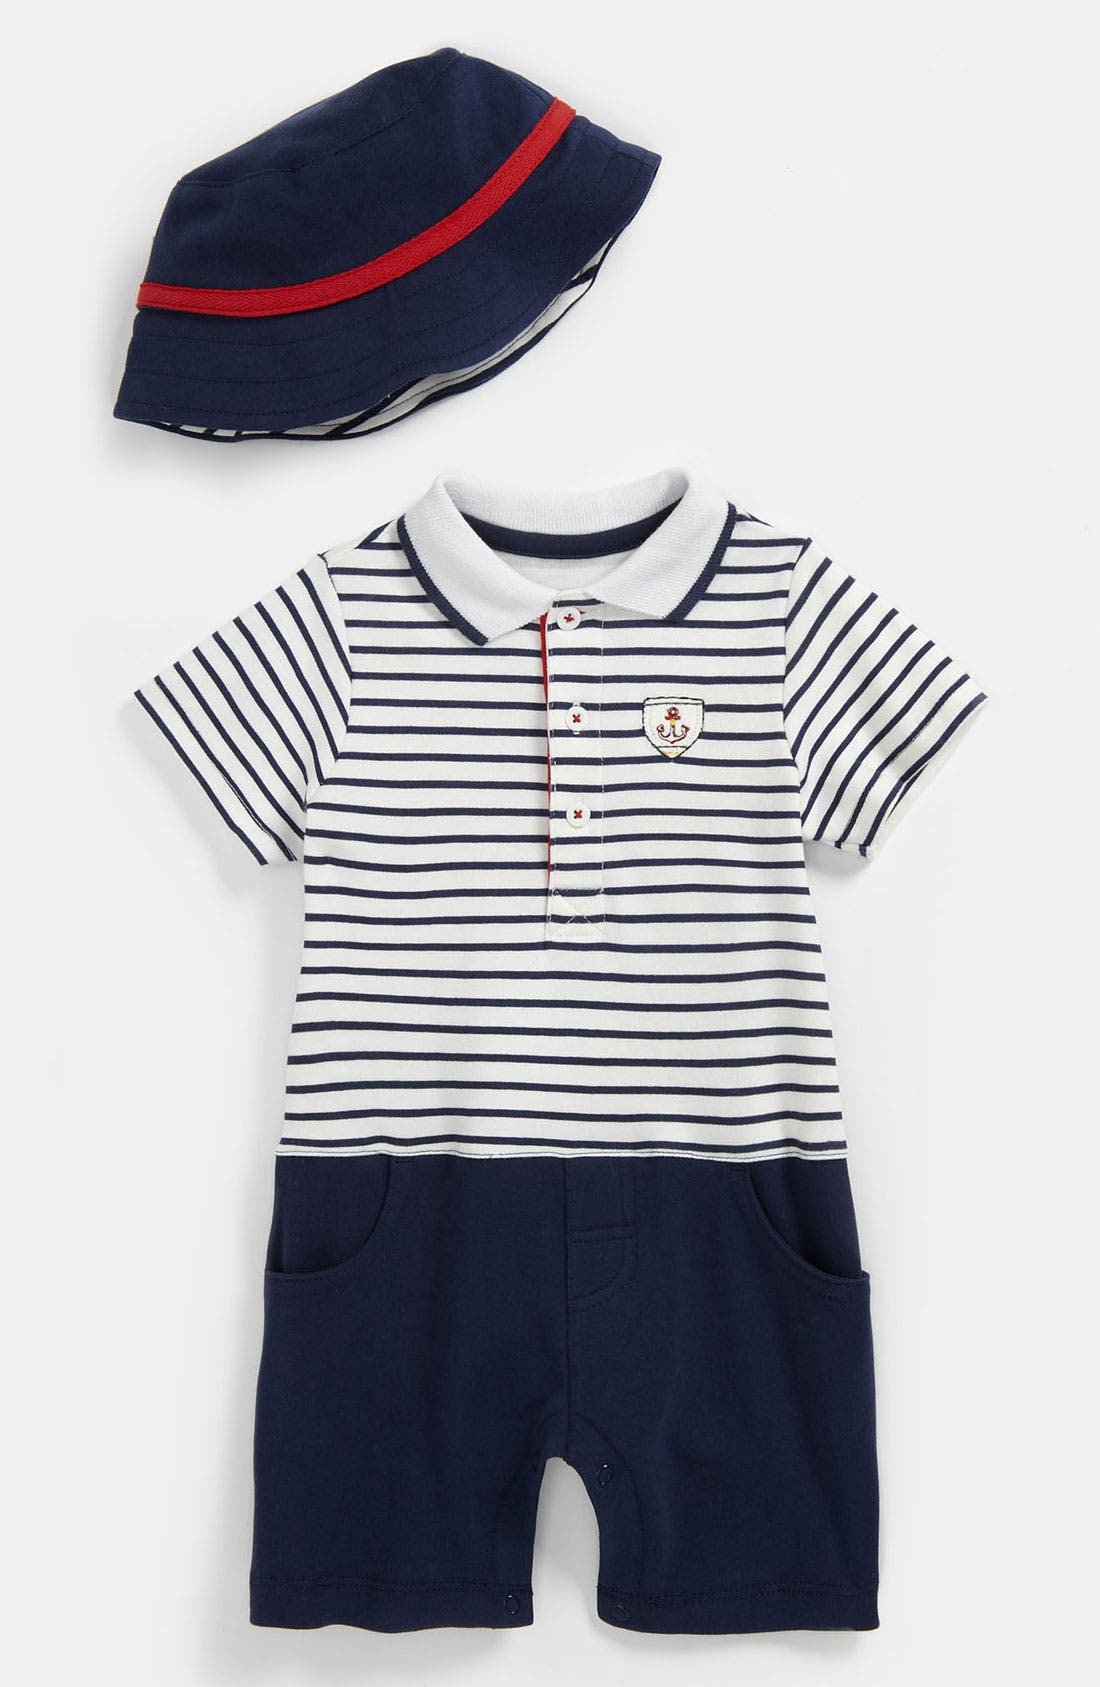 Main Image - Little Me 'Drop Anchor Sailing' Romper & Hat (Baby)